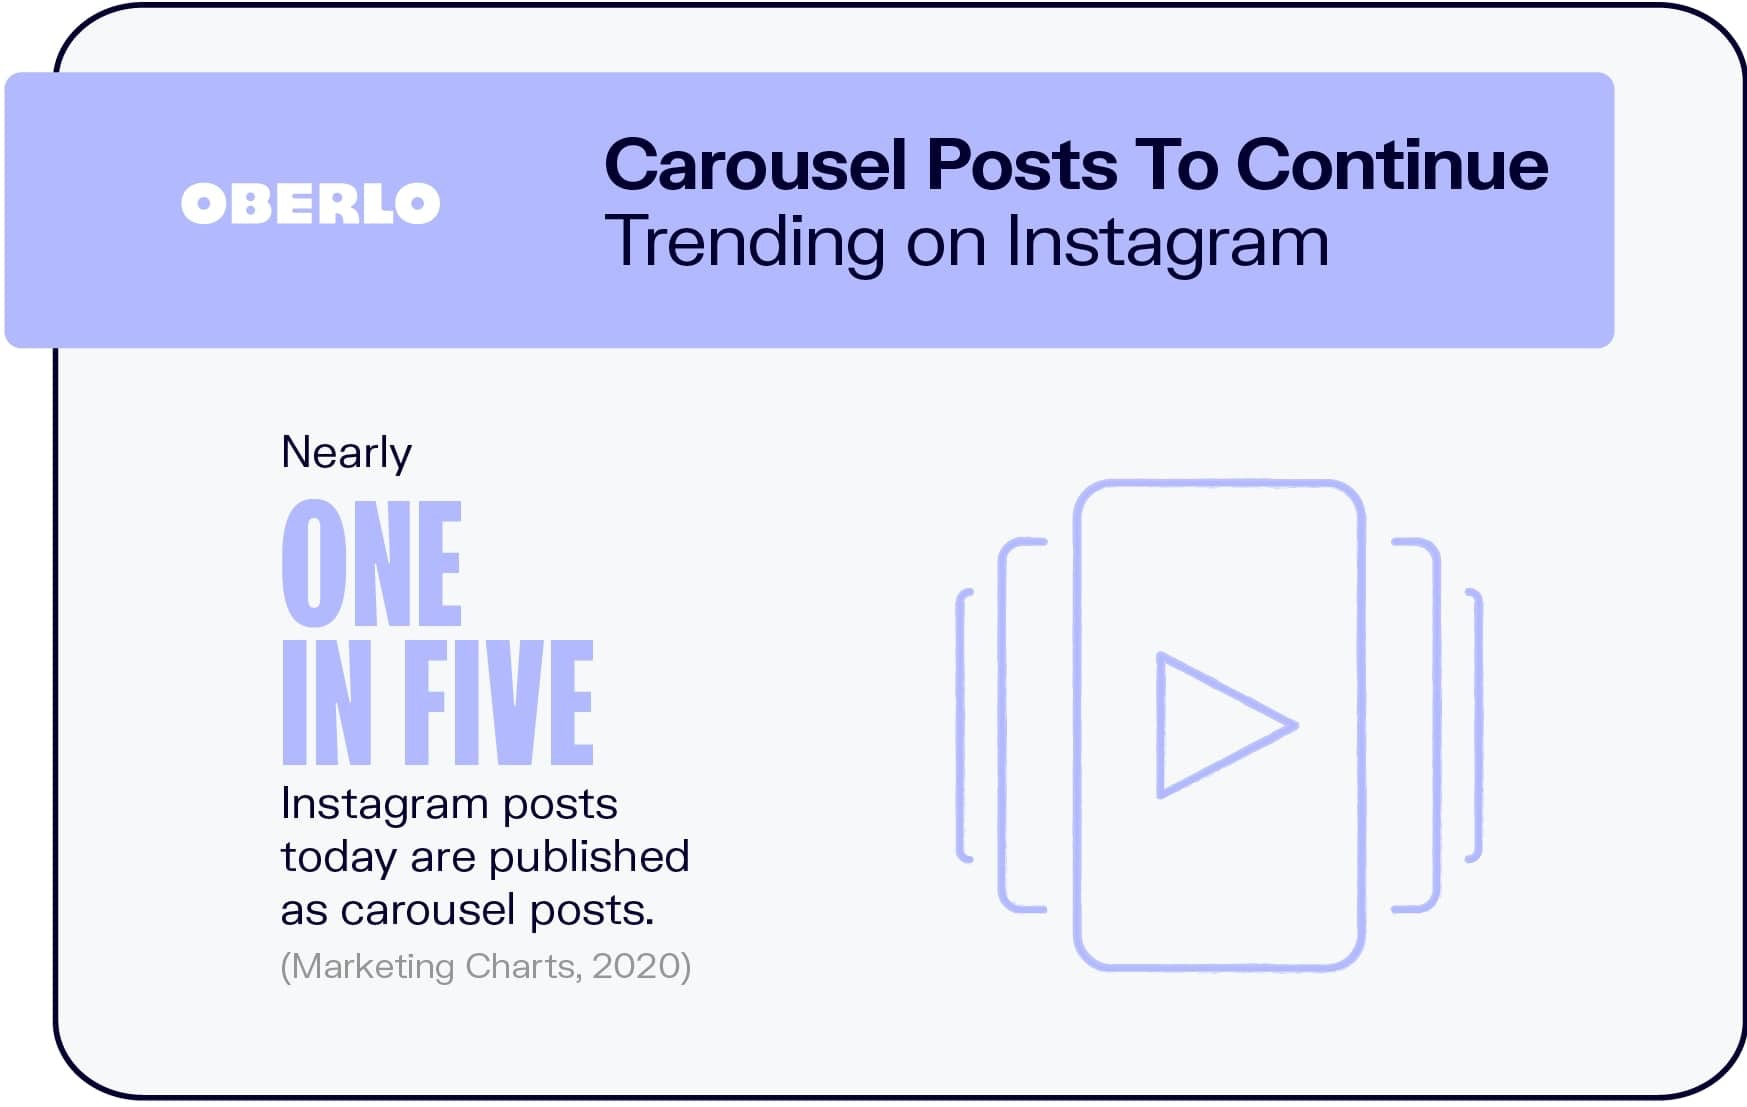 Carousel Posts To Continue Trending on Instagram